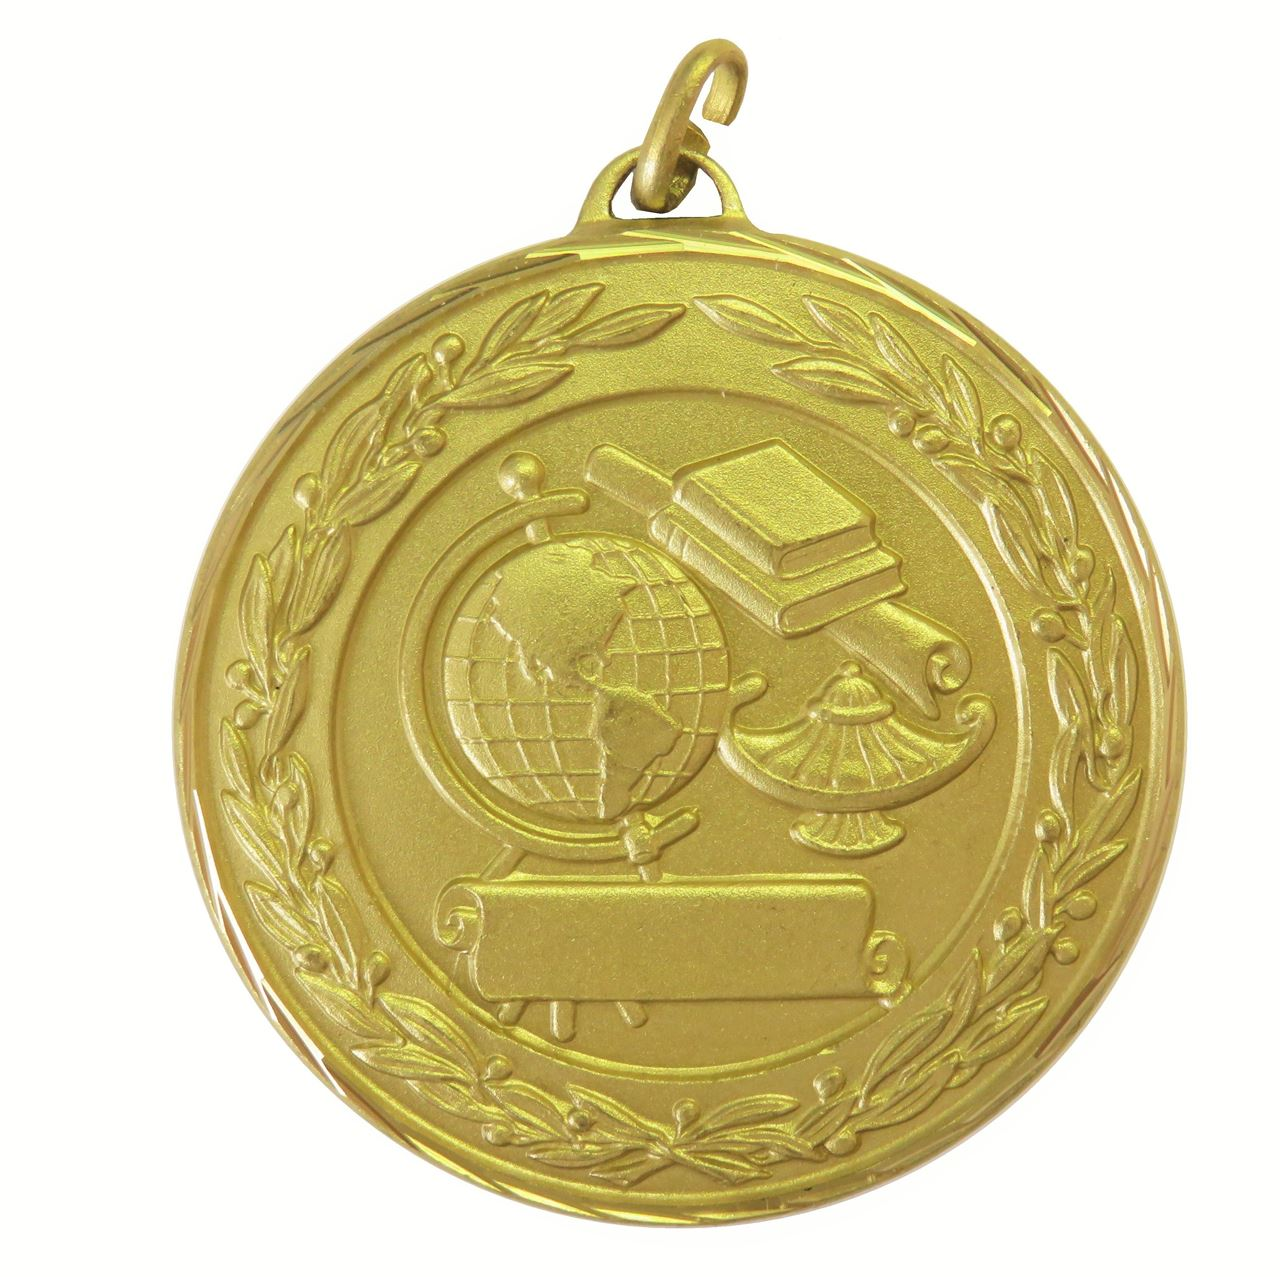 Gold Premium Classic Academic Medal (size: 50mm) - 9599F